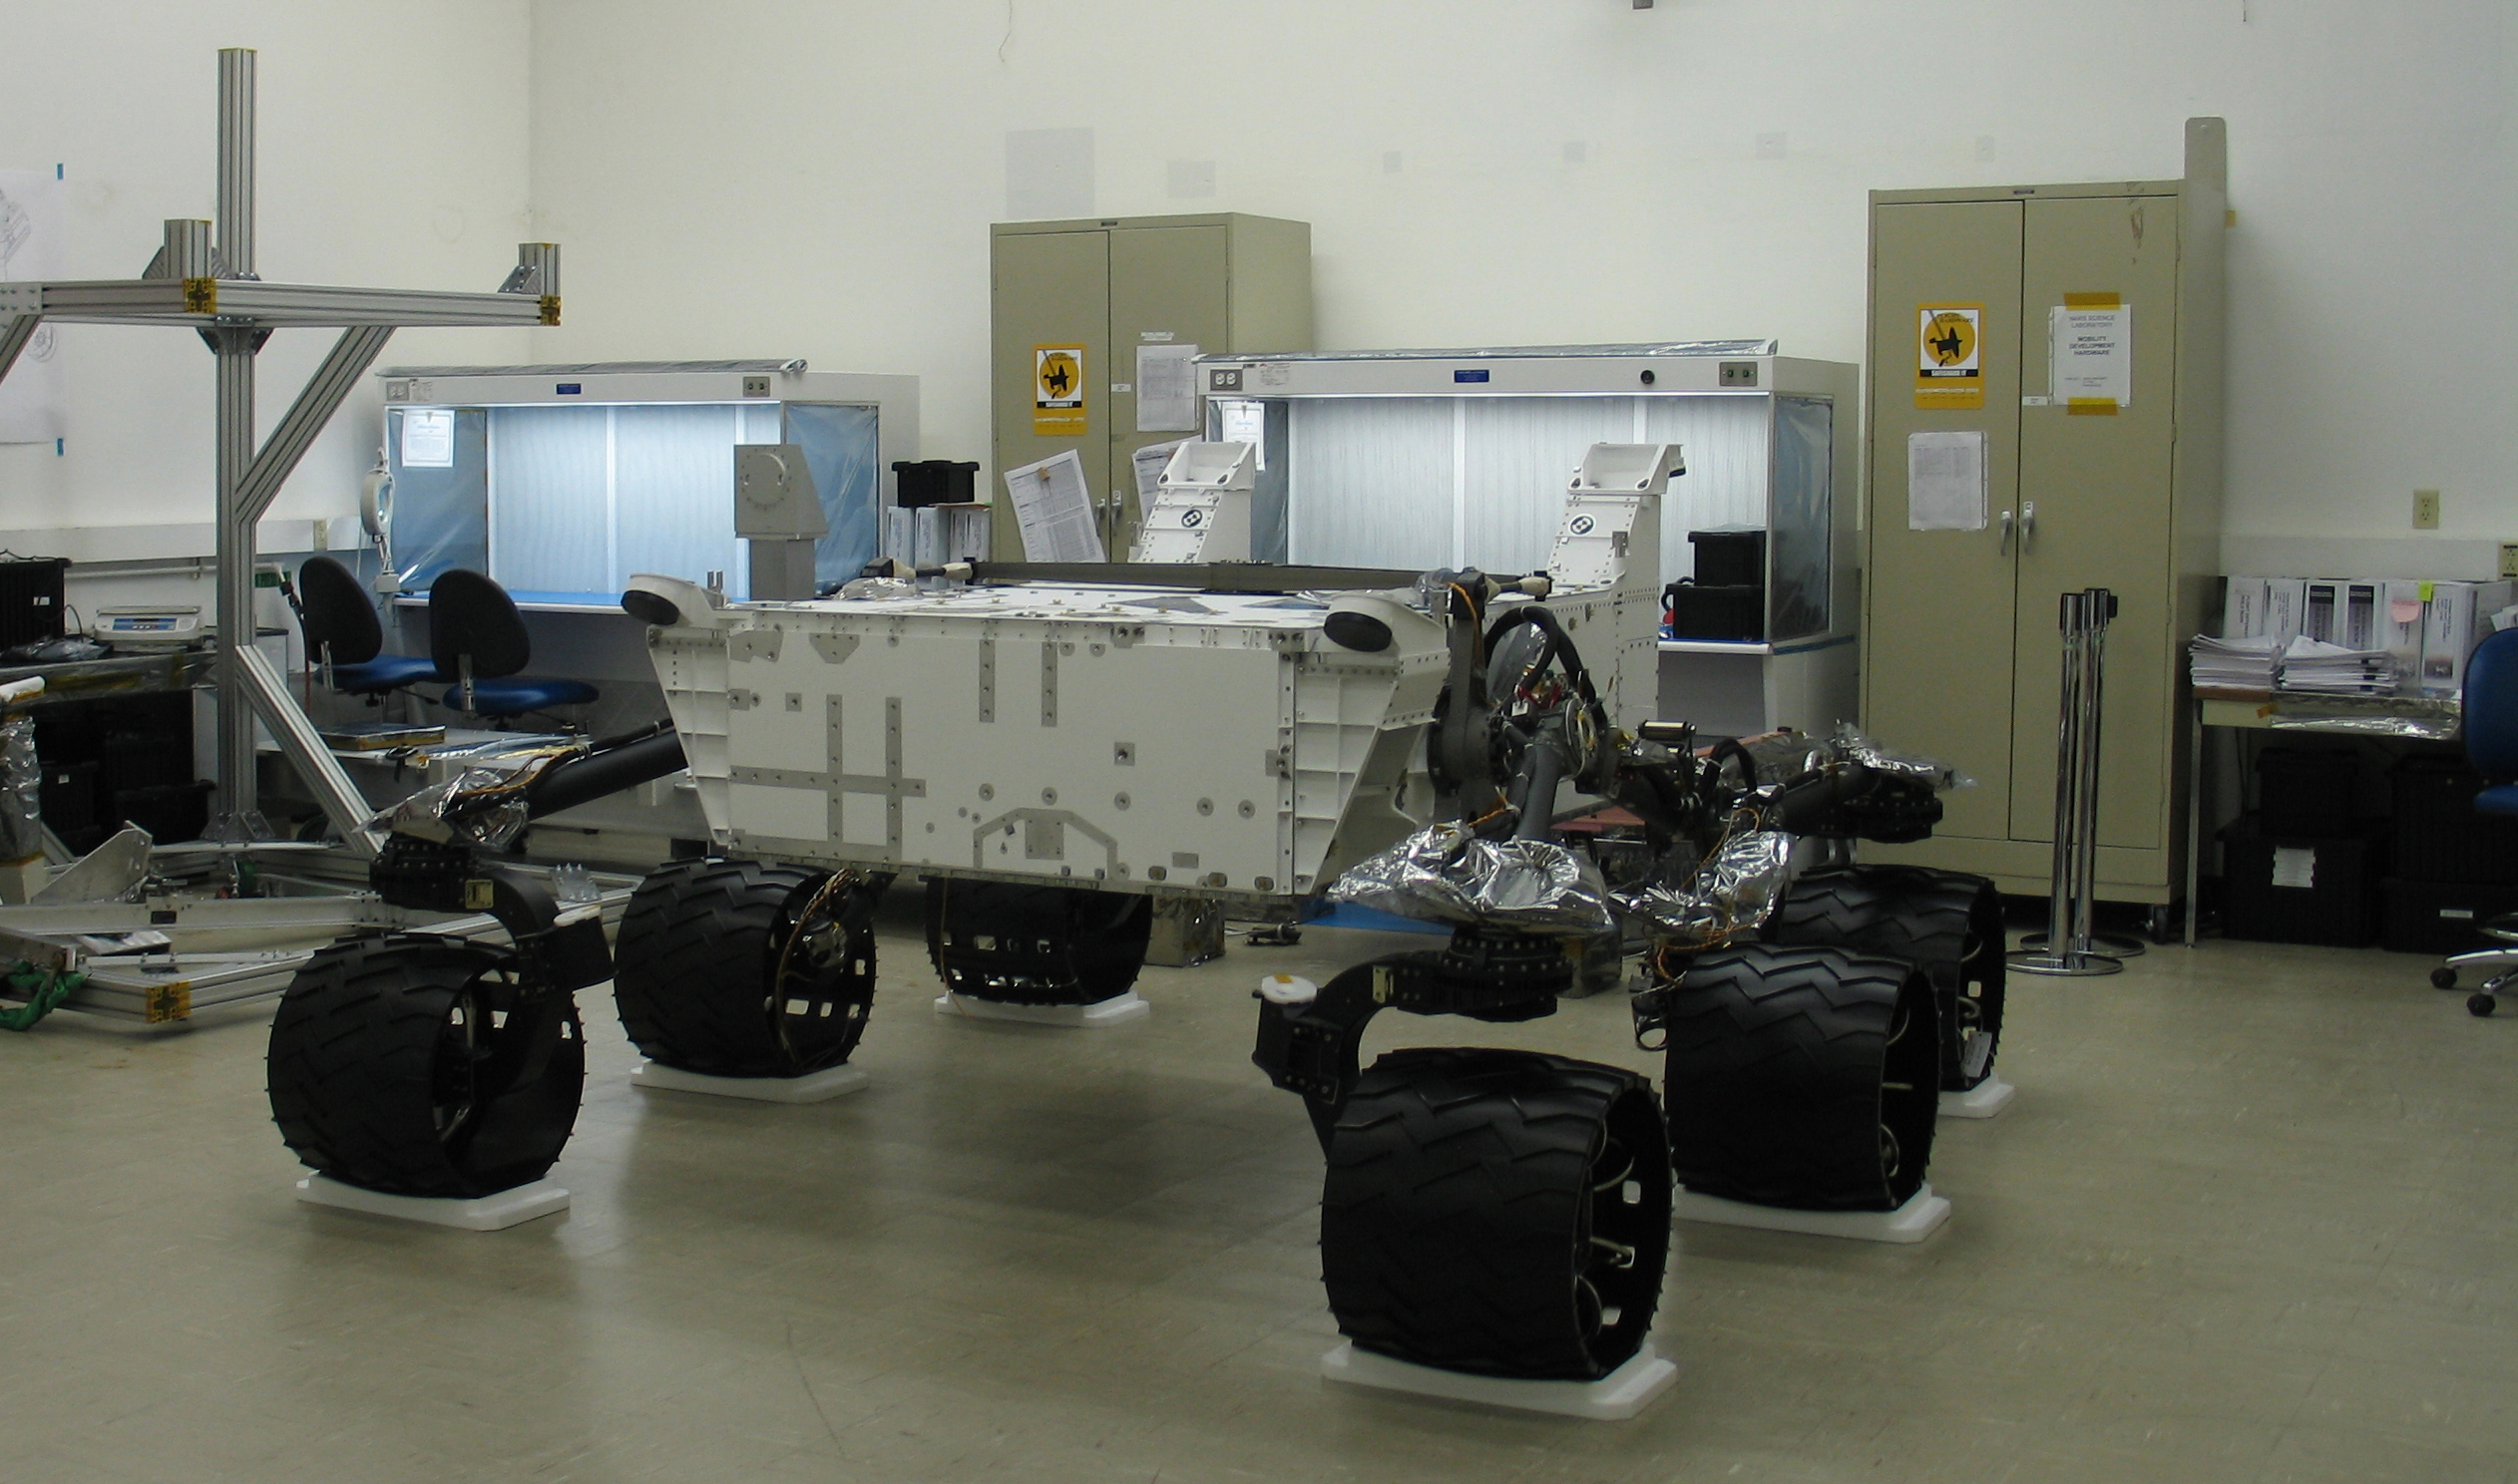 This image shows the body of the Mars Science Laboratory rover inside a clean room, supported by its six huge wheels and suspension system. Specially fitted platforms underneath the wheels hold the rover in place and prevent it from moving.